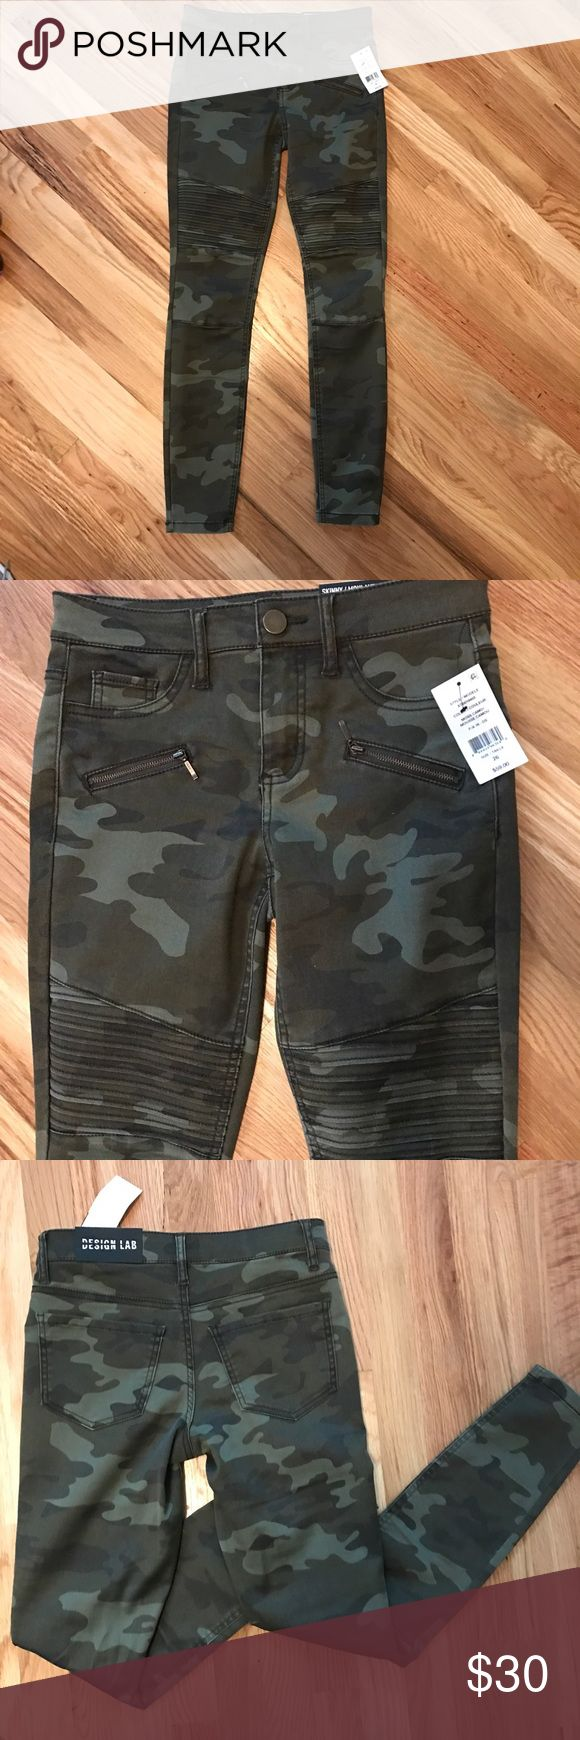 NWT, Camo Skinny Pants Lord & Taylor (Design Lab) camp pants, with cute details Lord & Taylor Pants Skinny